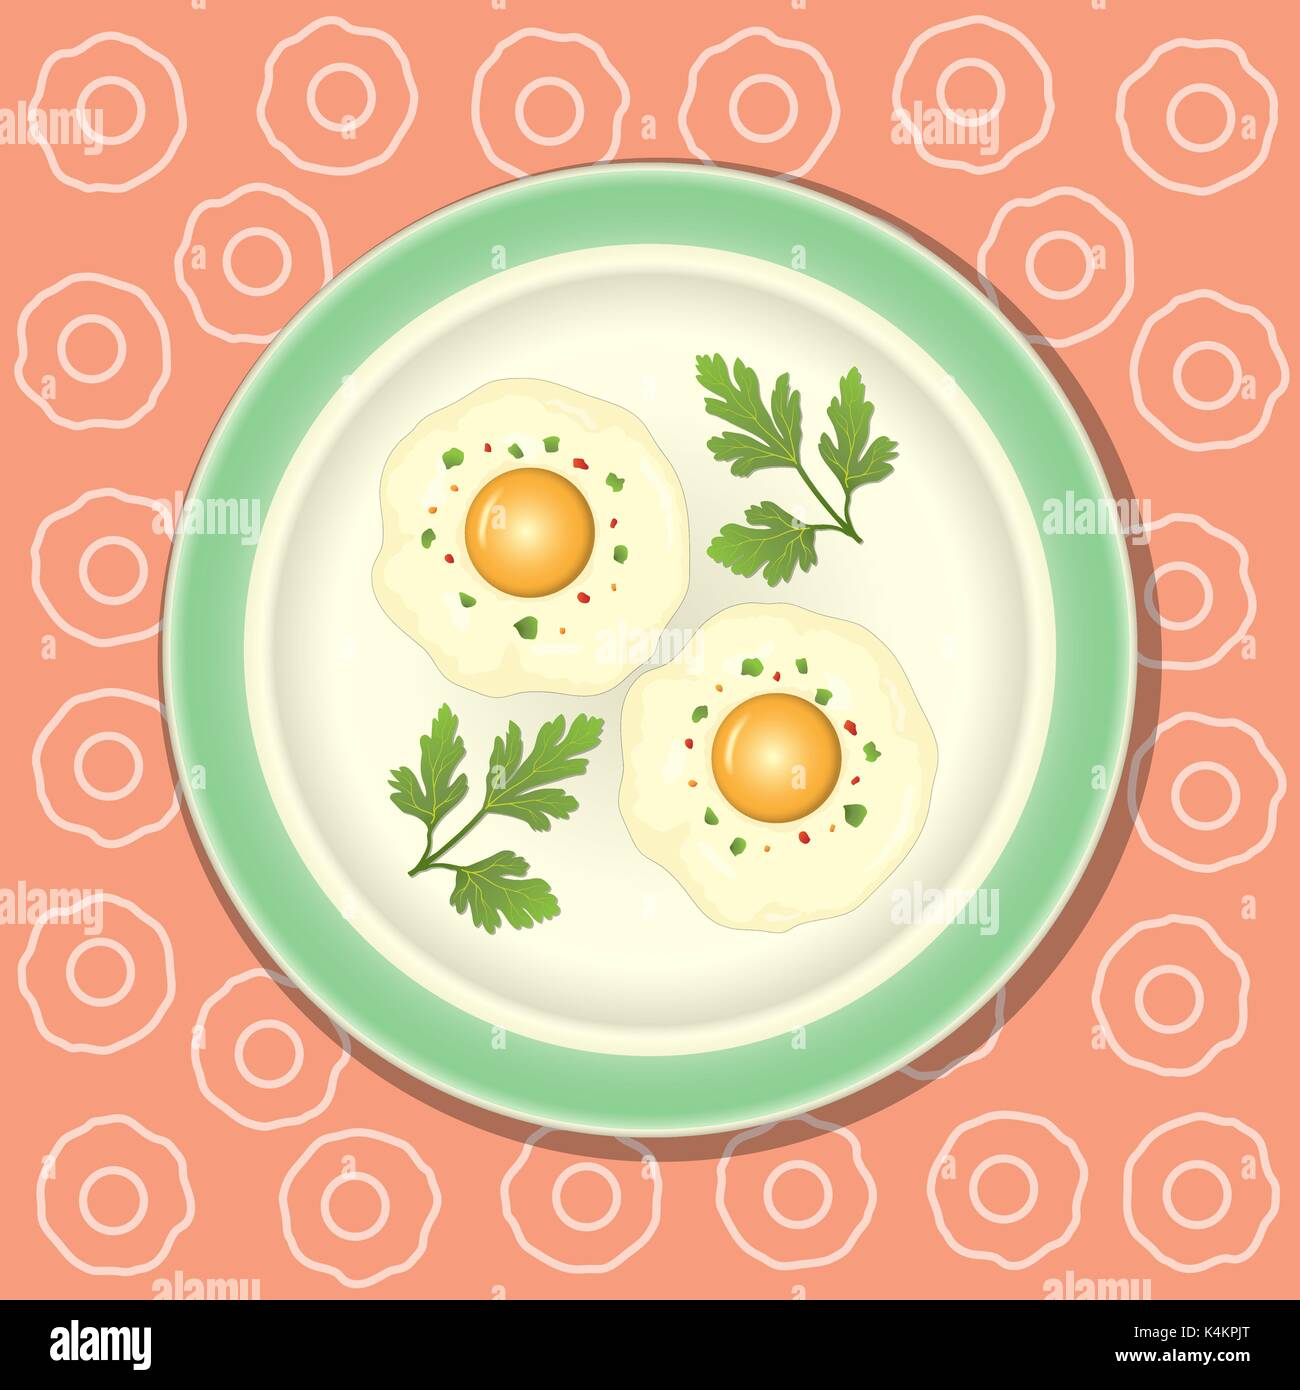 Fried egg with parsley on the plate, background with pattern - Stock Vector